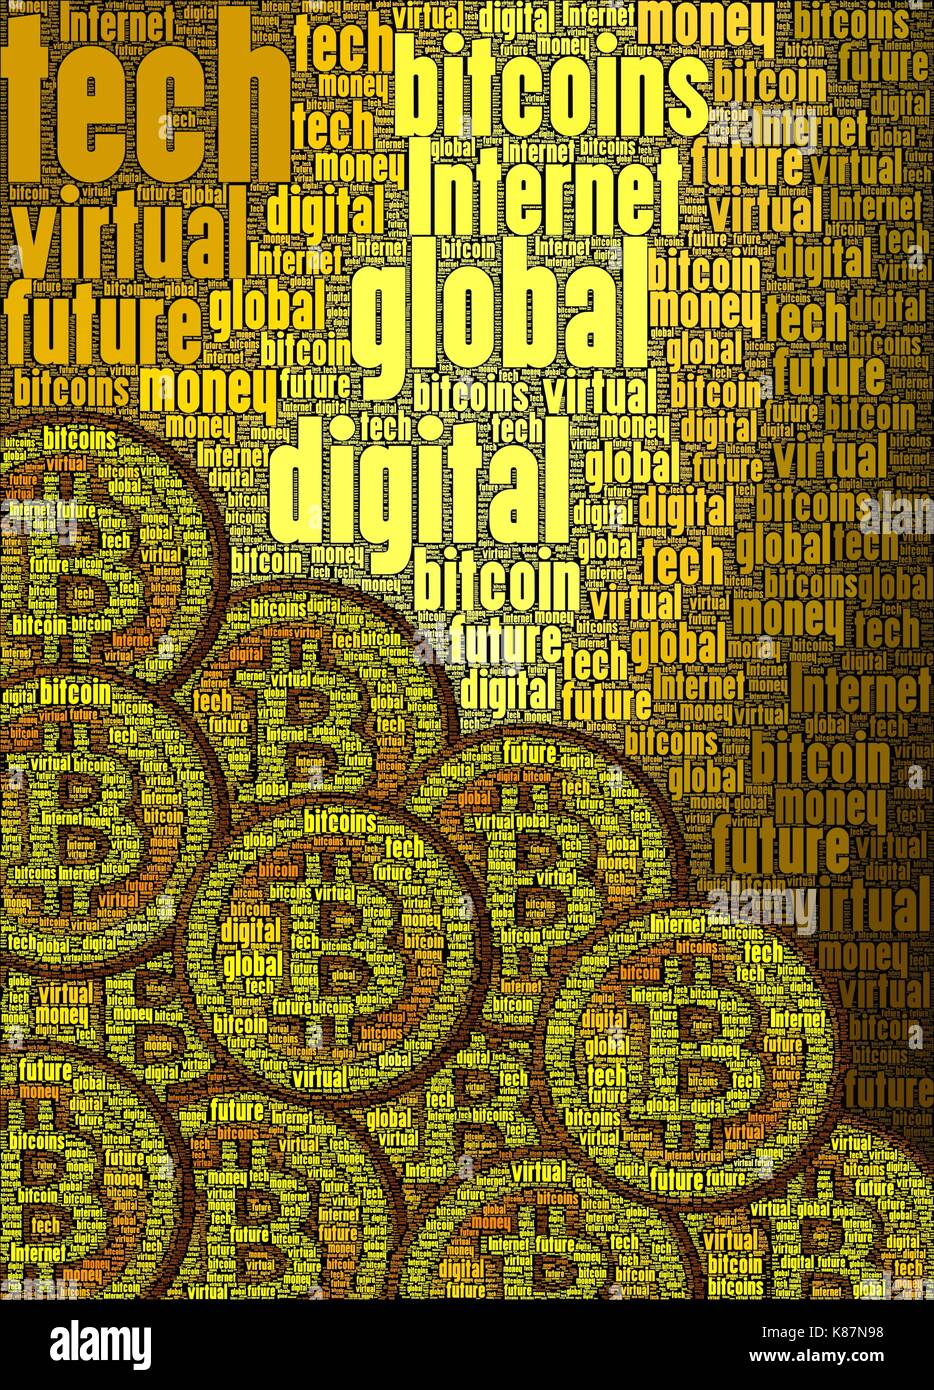 Bitcoin concept art made only using words about the subject, vertical. - Stock Image